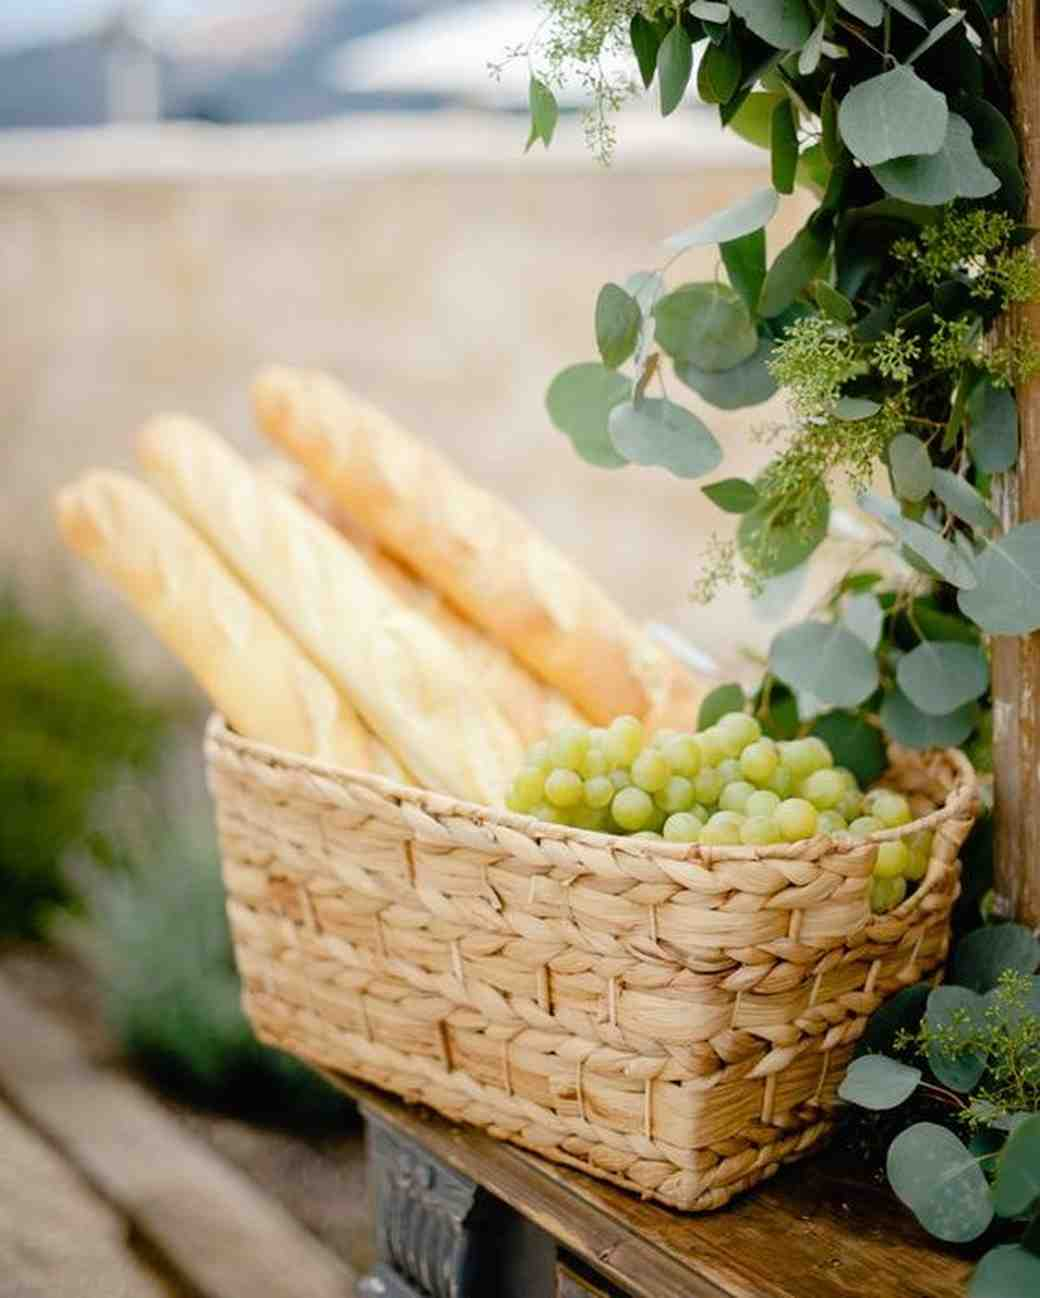 grapes and baguettes in woven baskets